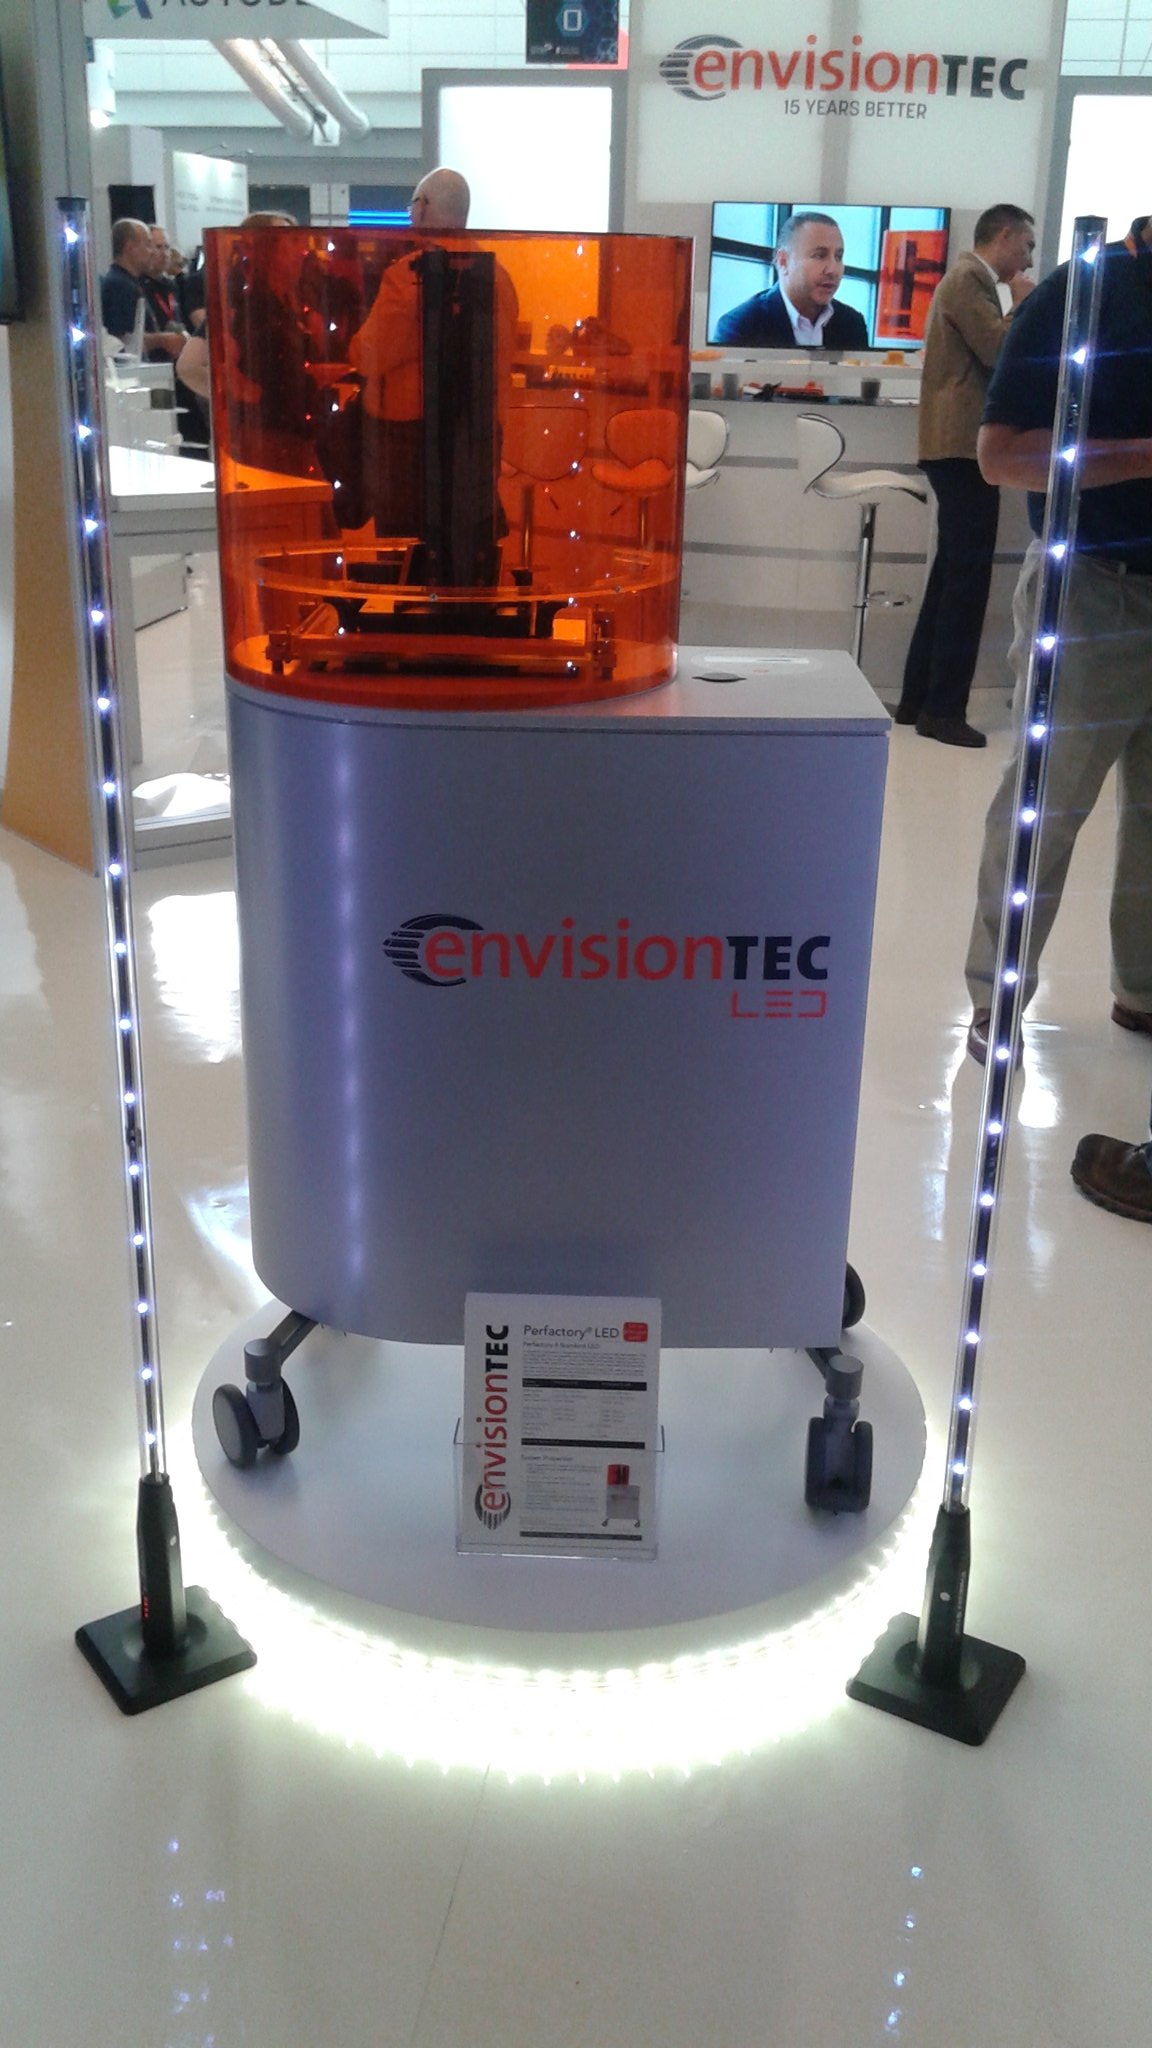 EnvisionTEC's new LED system. Photo via EnvisionTEC.